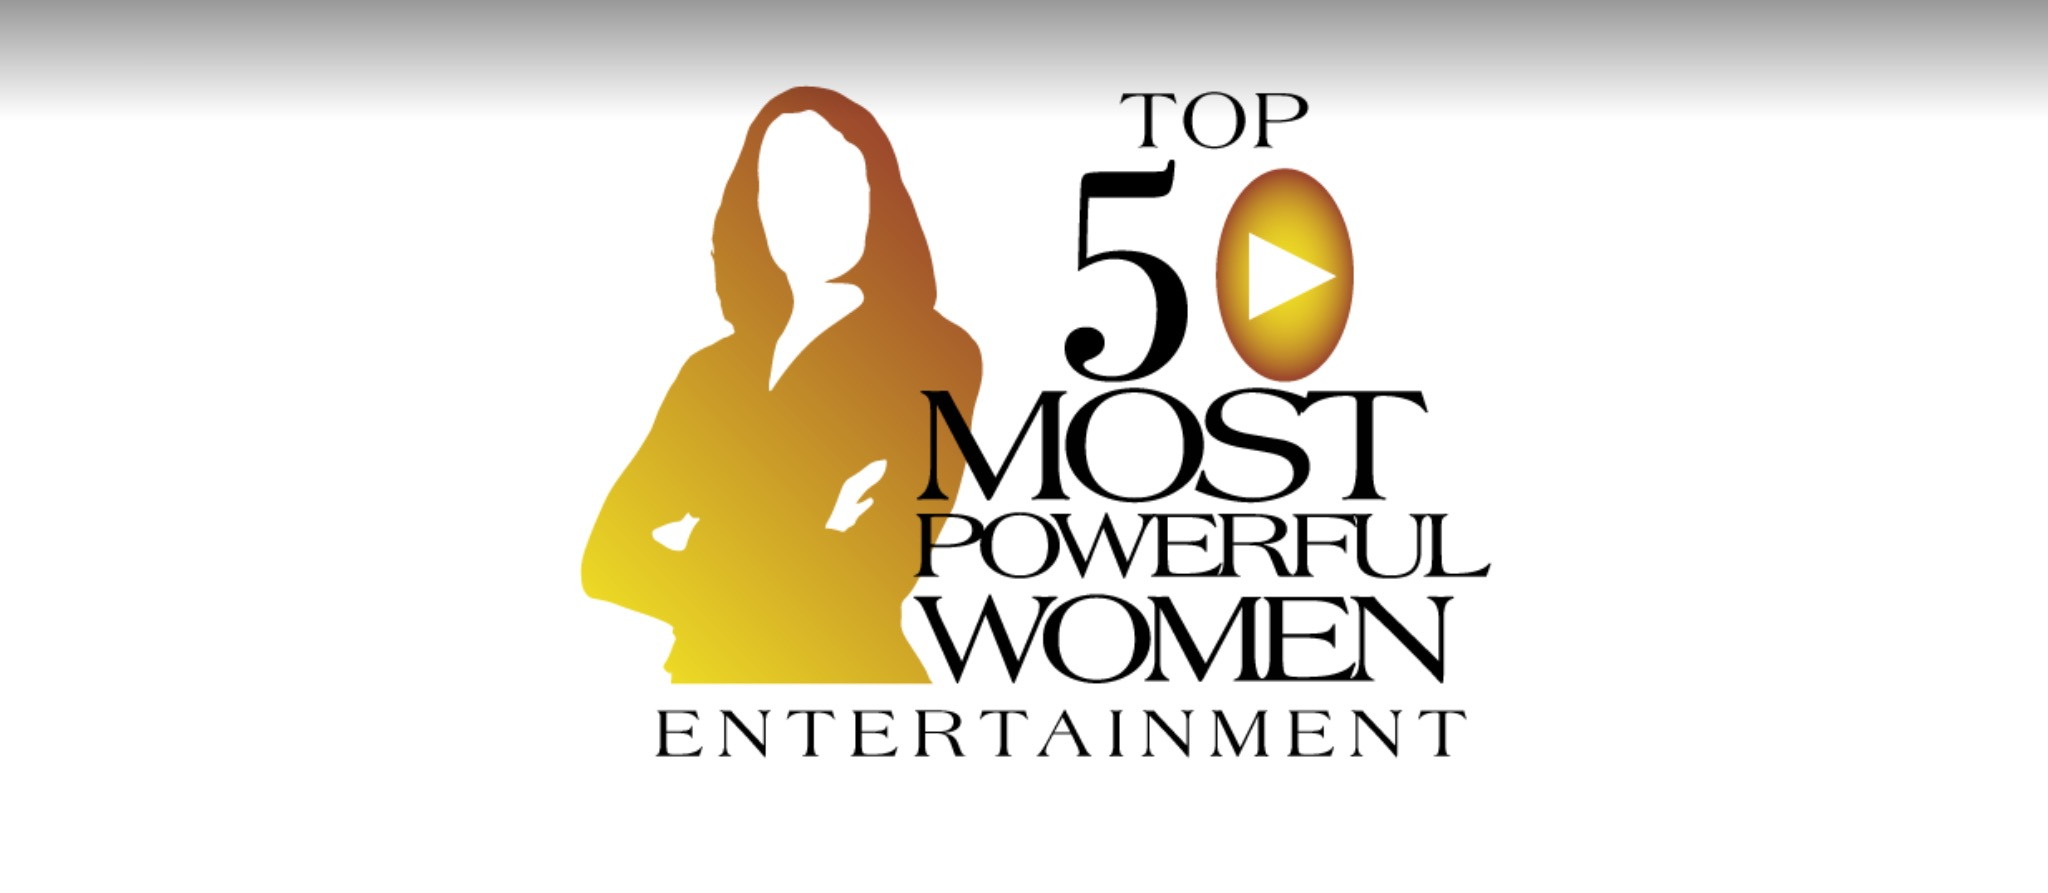 """Disney CFO Added To """"Top 50 Most Powerful Women in Entertainment"""" List"""